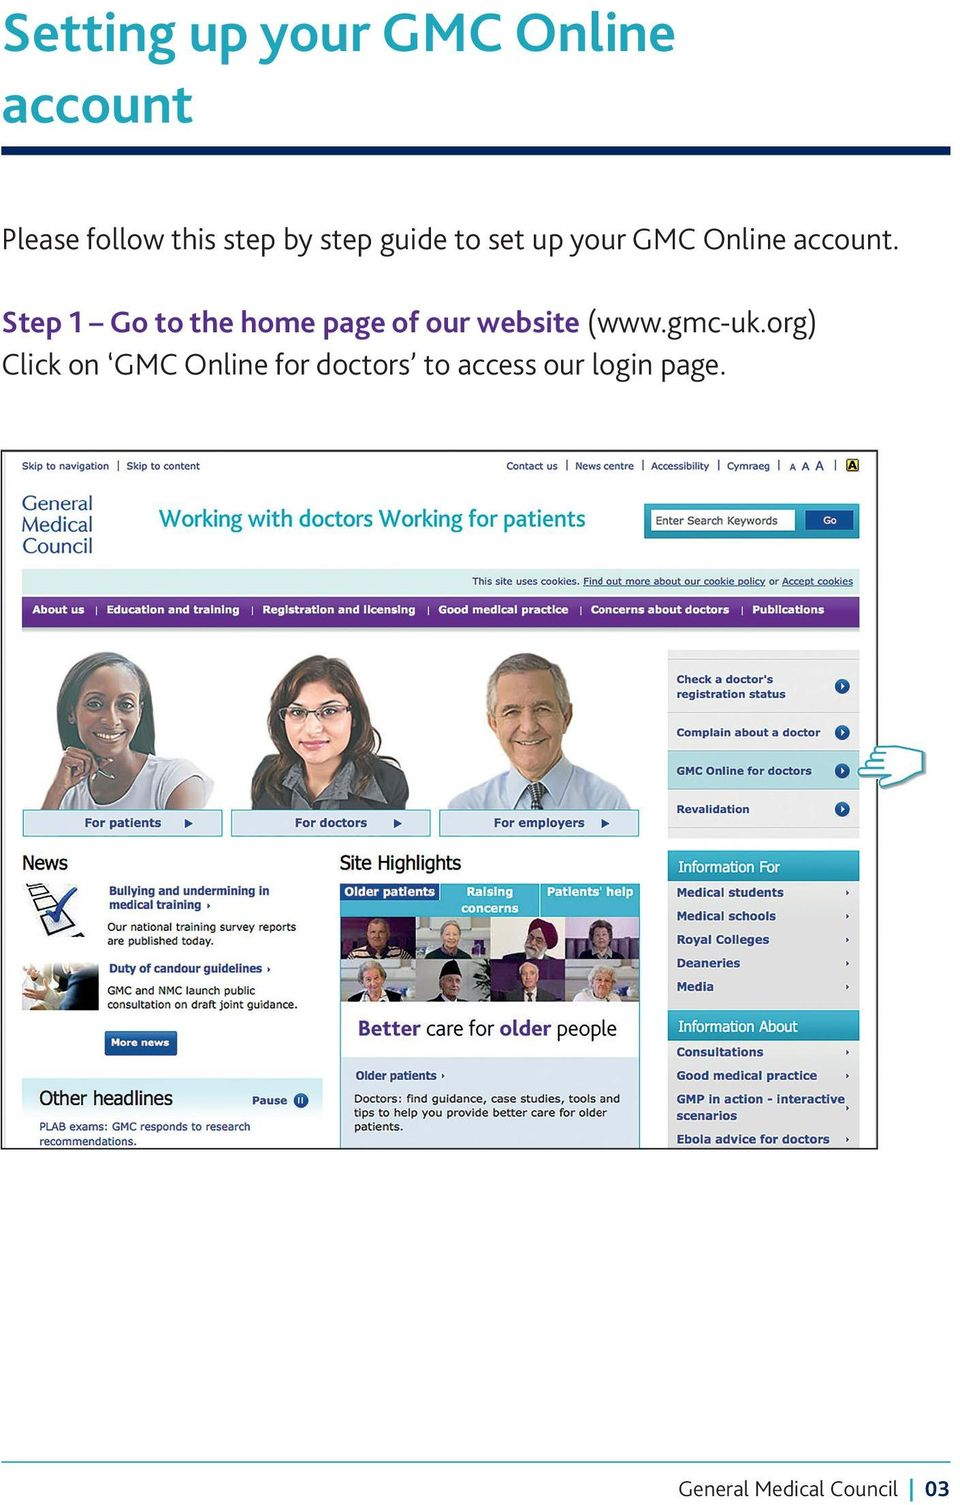 Step 1 Go to the home page of our website (www.gmc-uk.